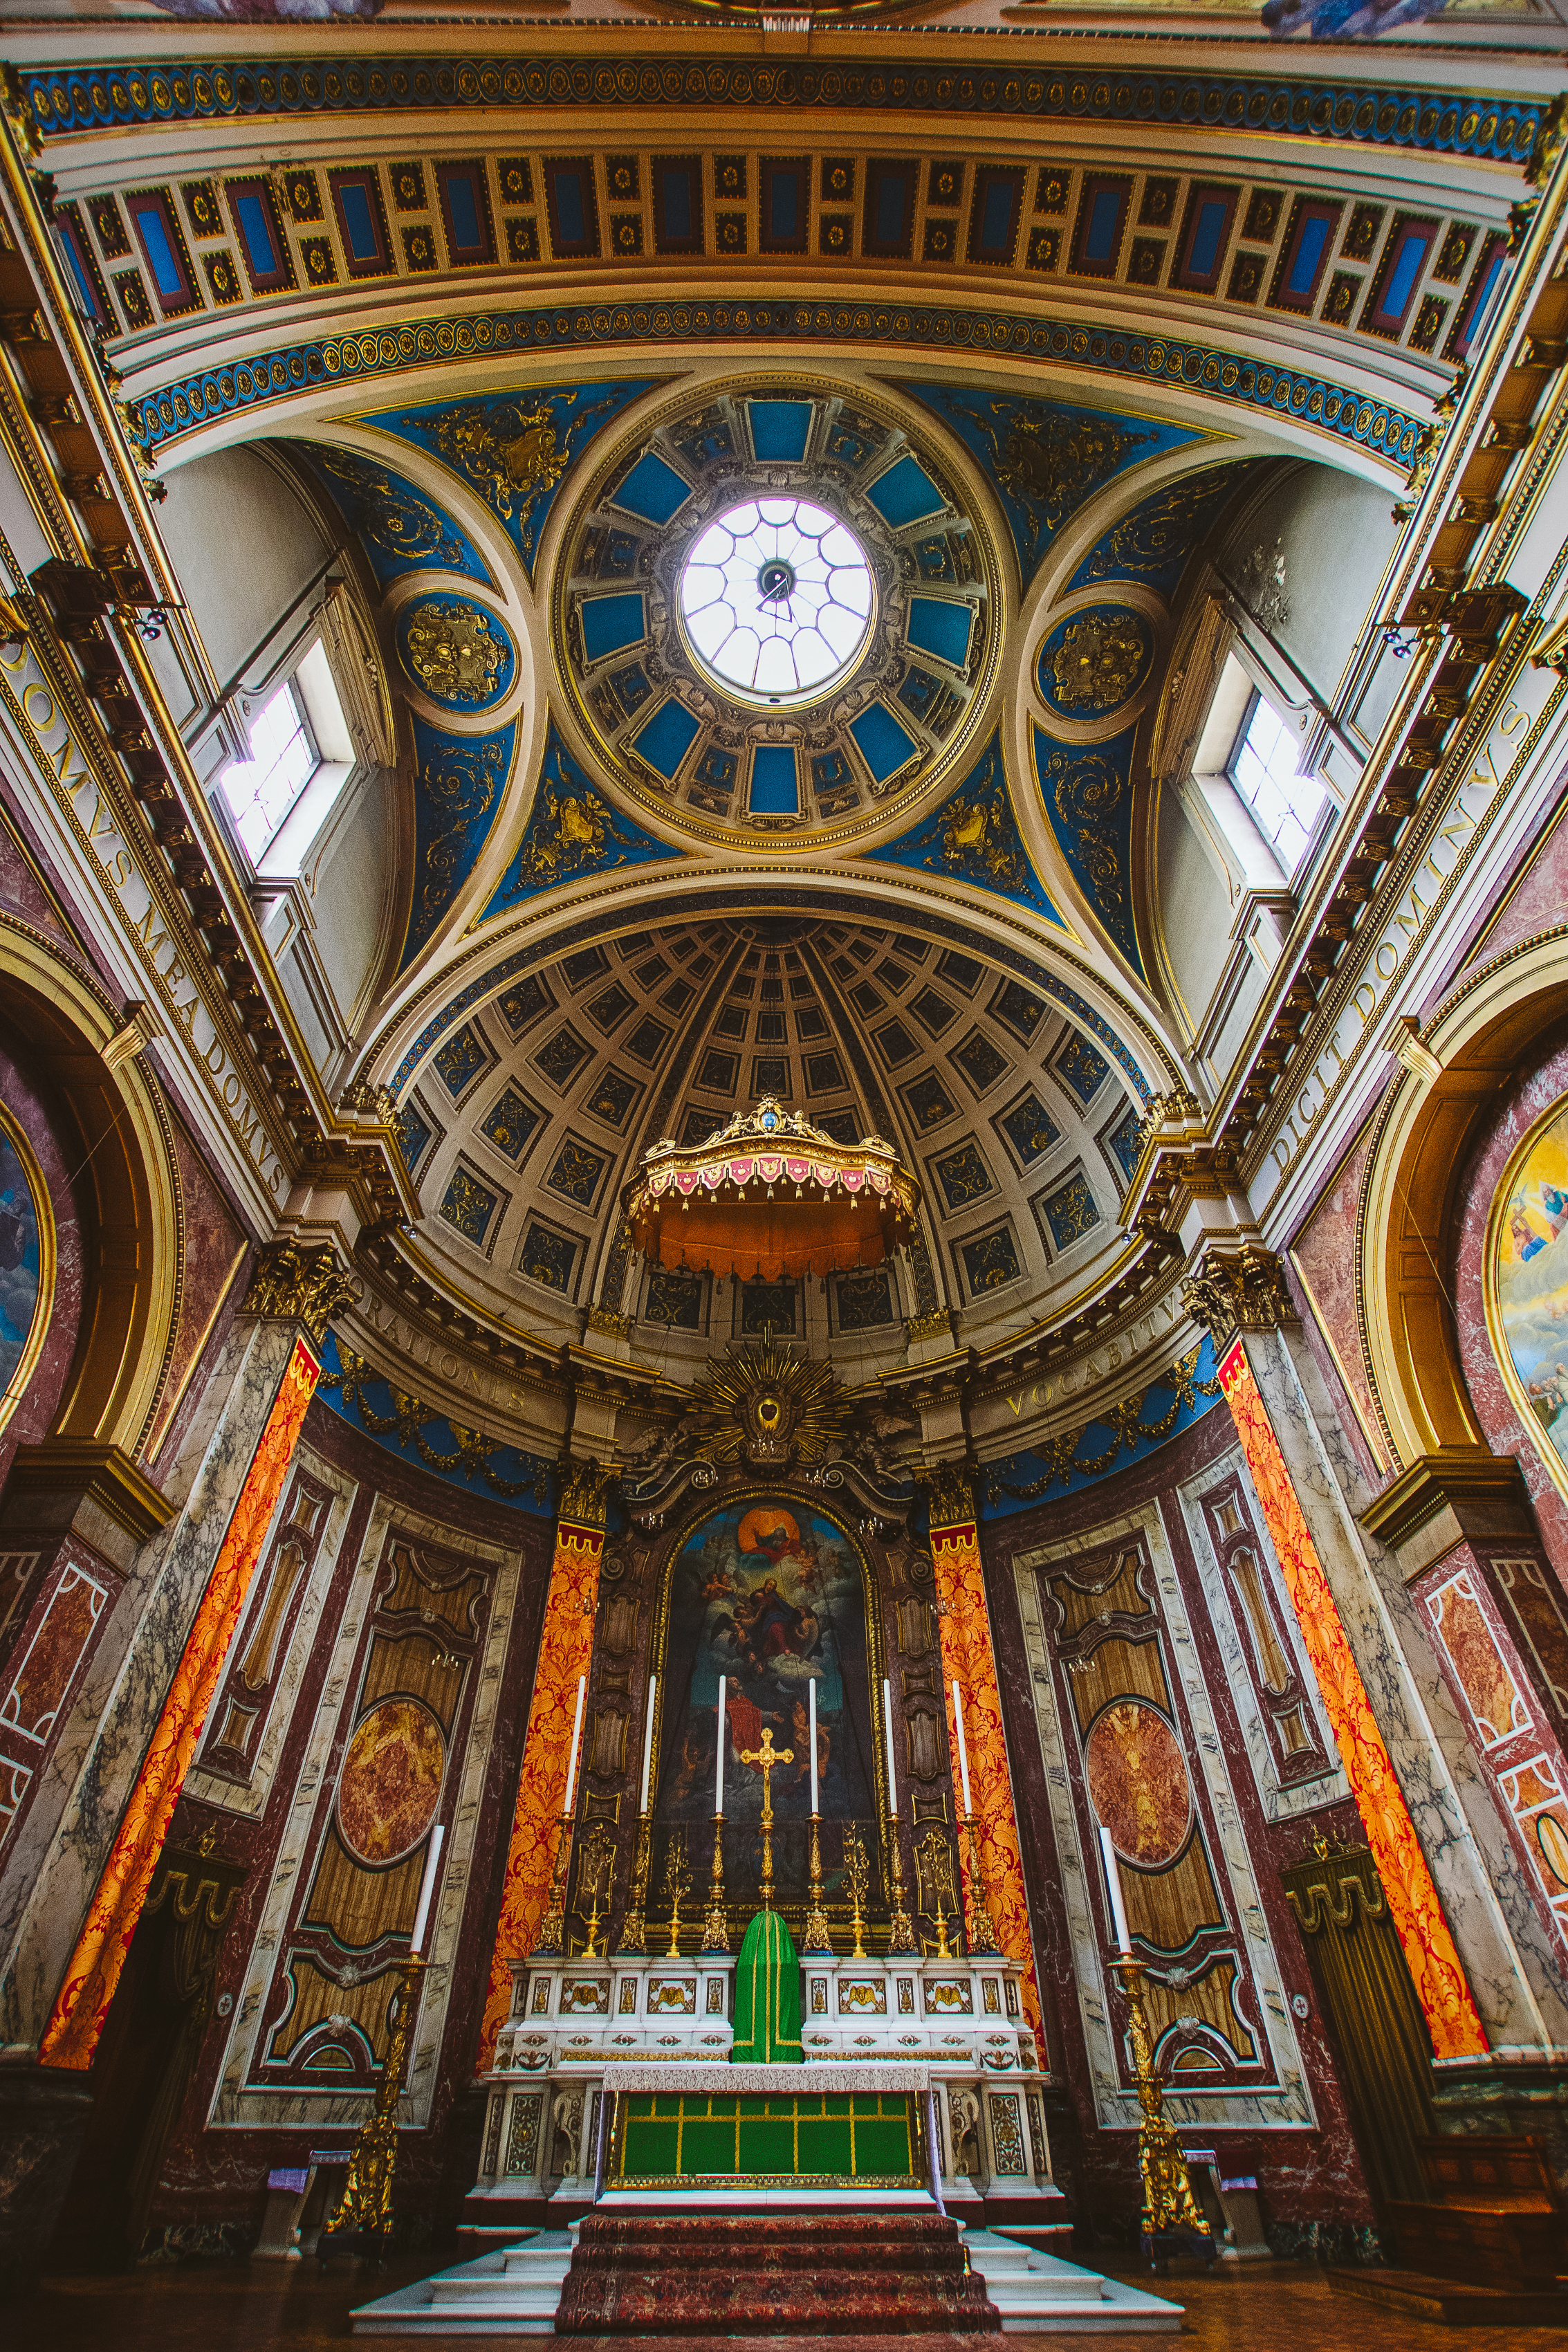 The London Oratory was quite the little cathedral. It doesn't look like much from the outside but these Catholics sure know how to make excessive ornate places of worship.